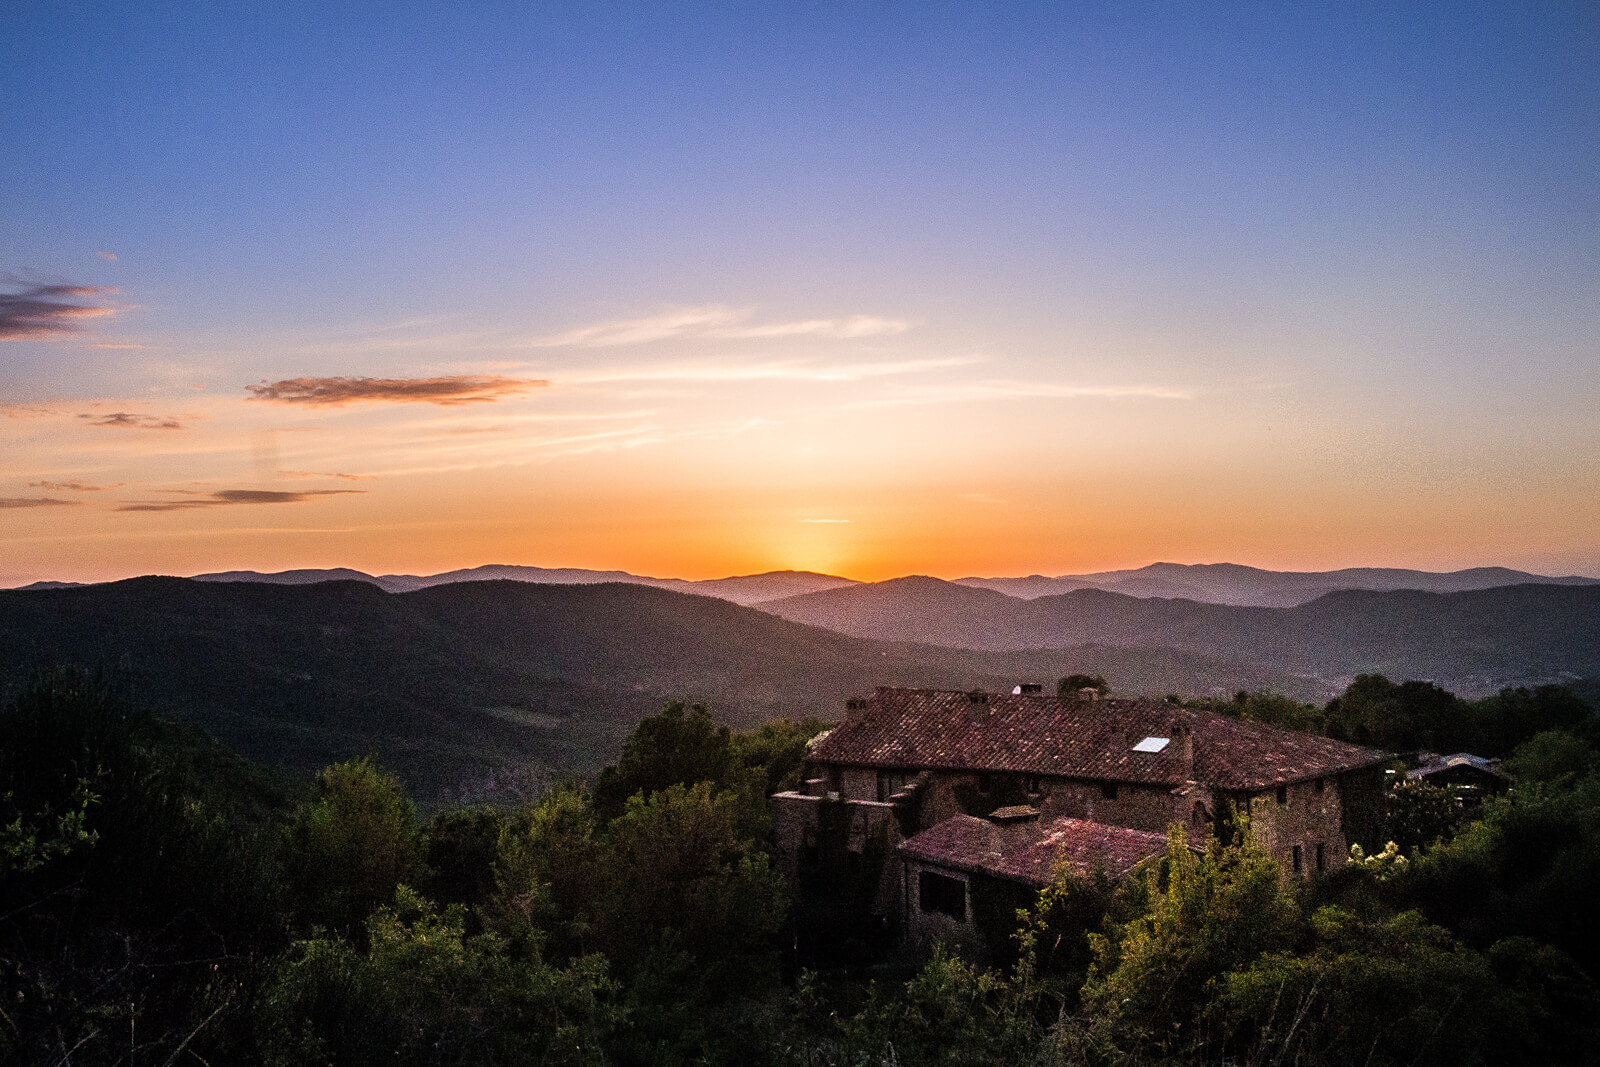 Eco-Lux Apartments & Retreats, Umbertide, Umbria, Italy | small luxury hotels, boutique hotels